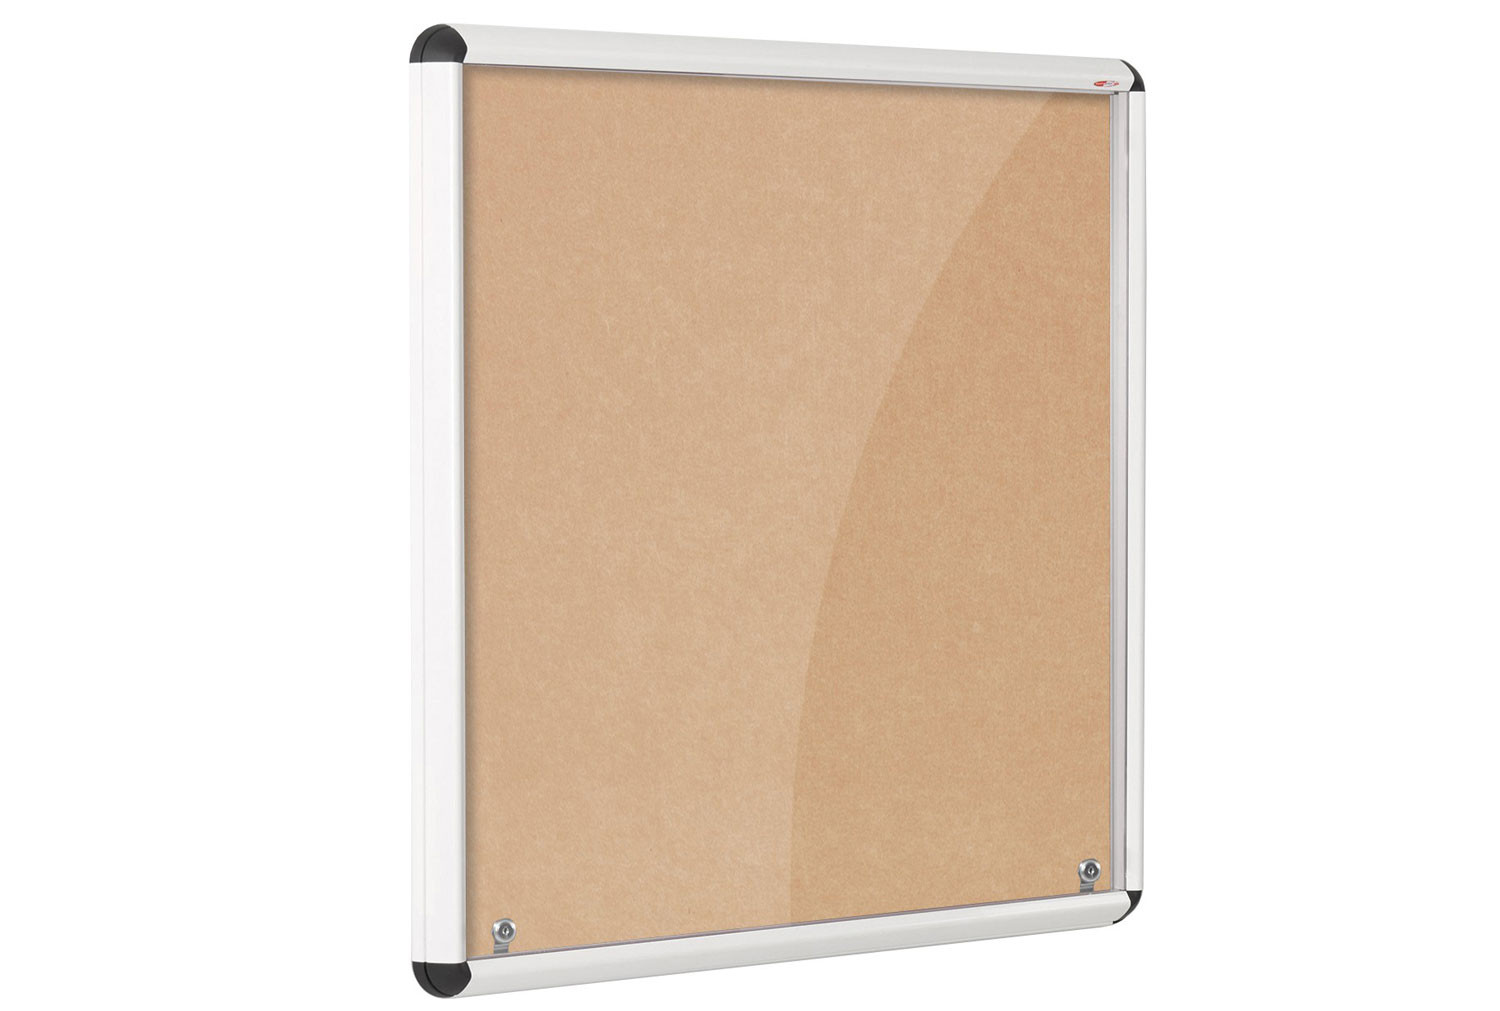 Shield Eco-Colour White Framed Corridor Tamperproof Noticeboards